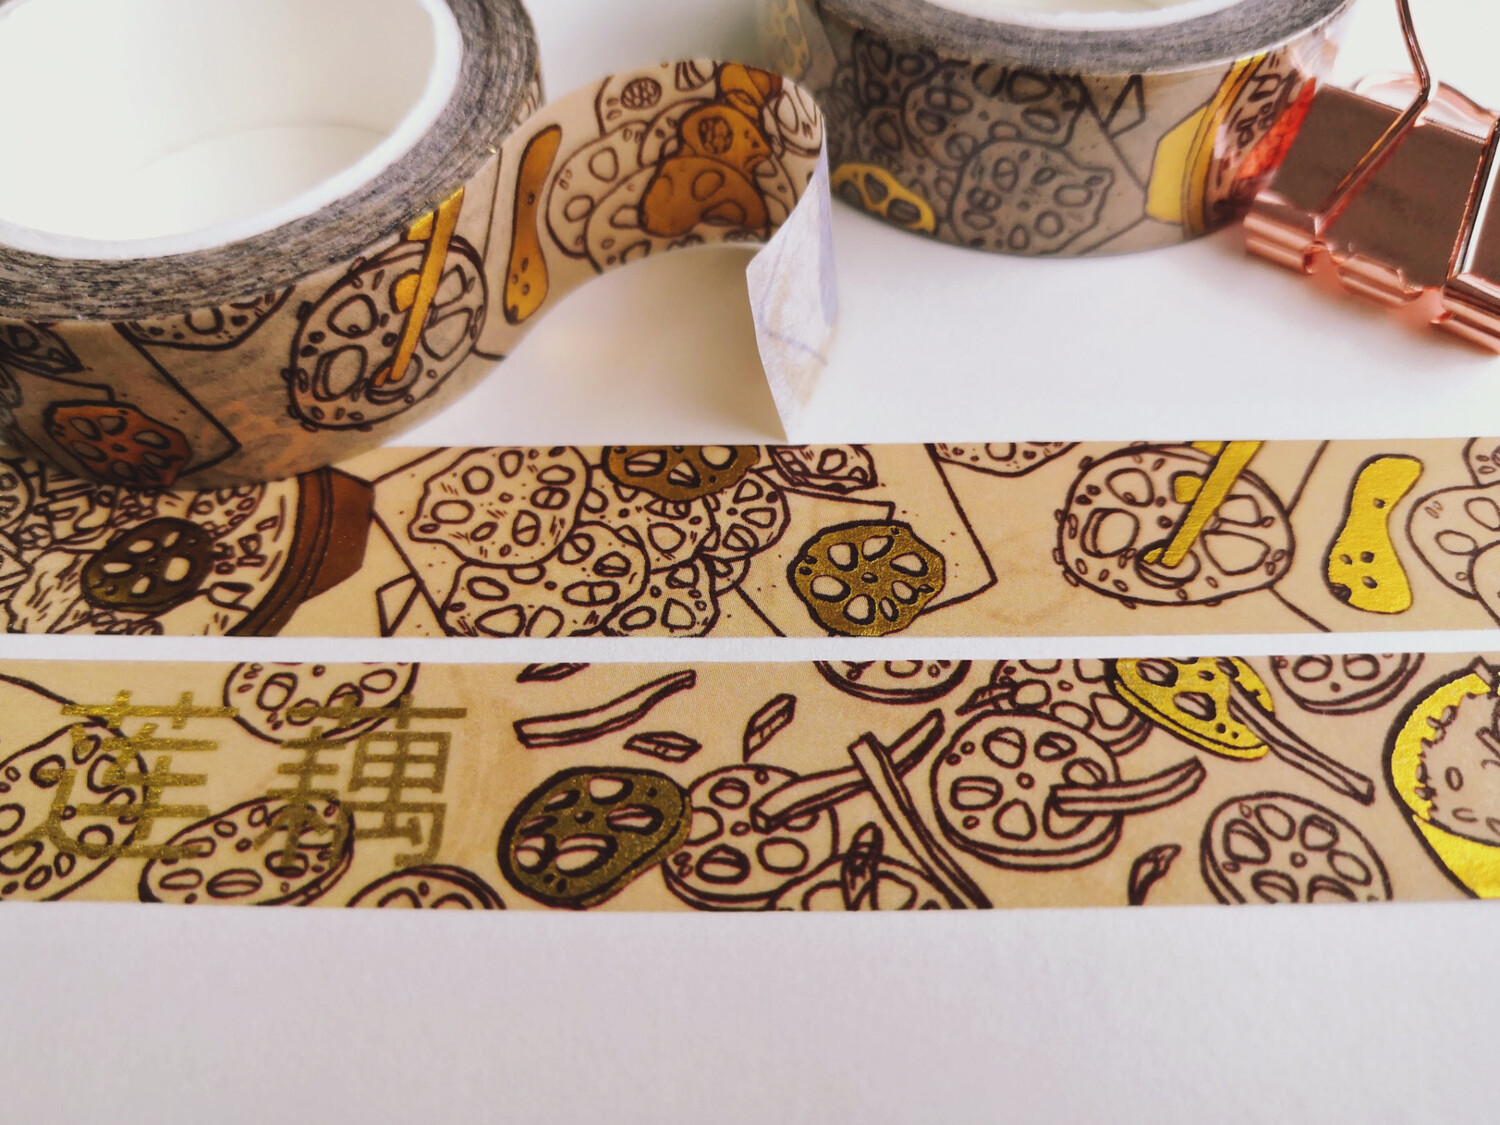 Lotus Root Dishes - Gold Foil Washi Tape